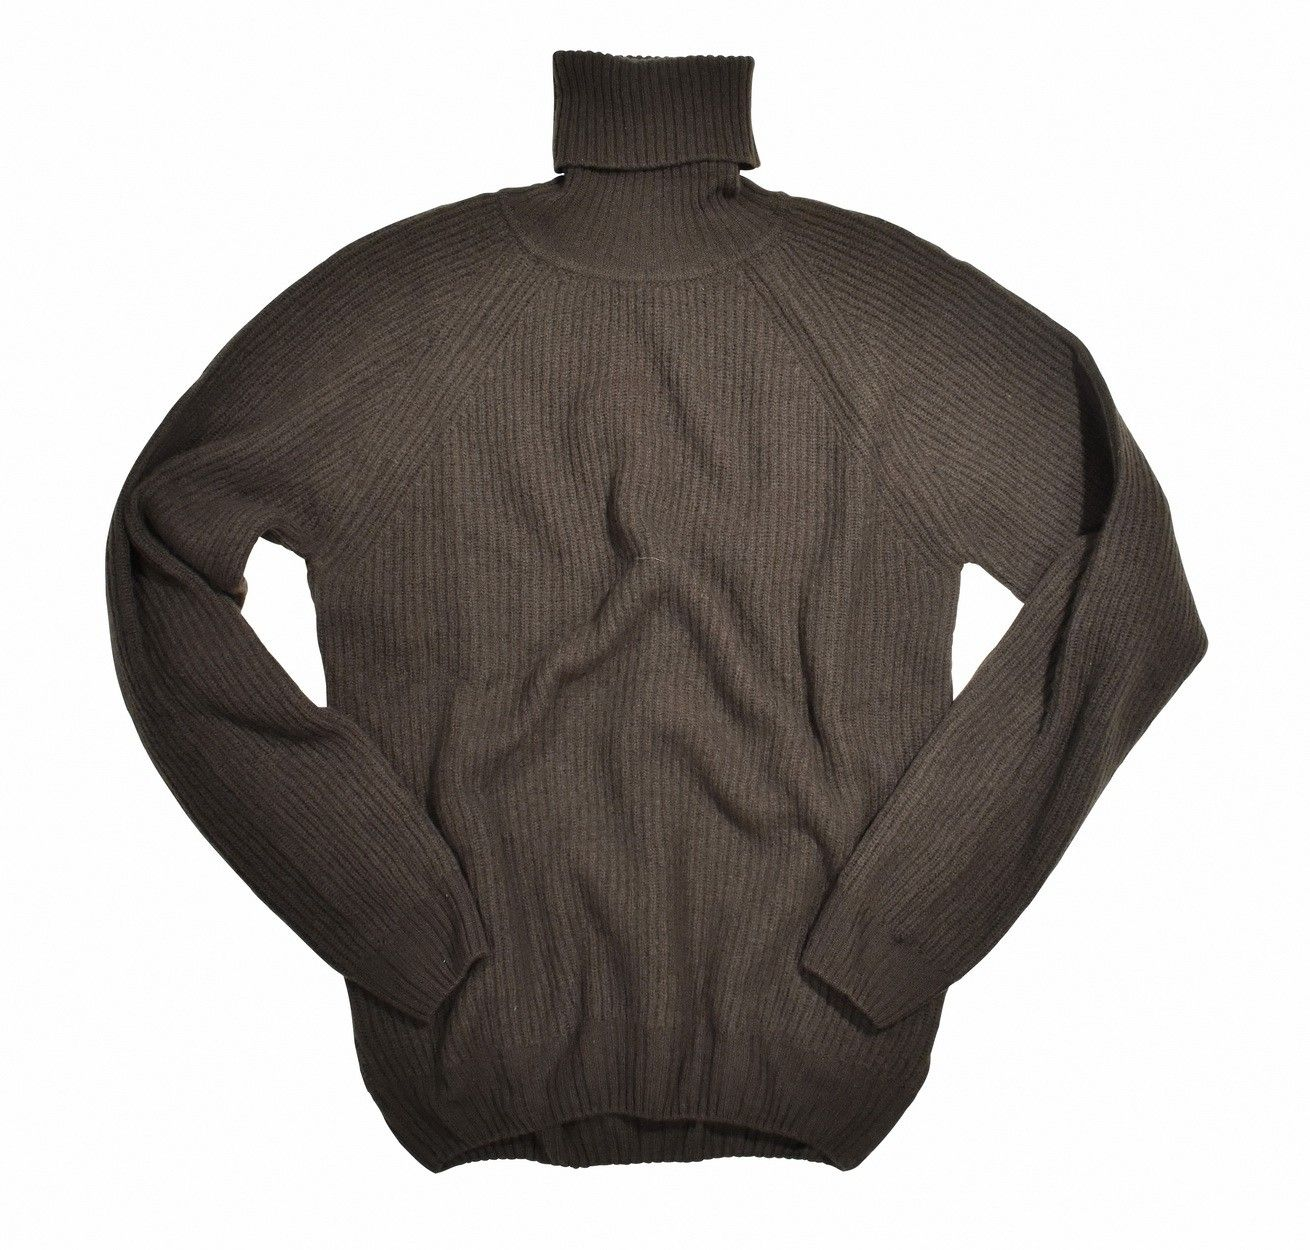 CROSSLEY - Herren Pullover - Daphan Knit Turtle Neck - Dark Mili